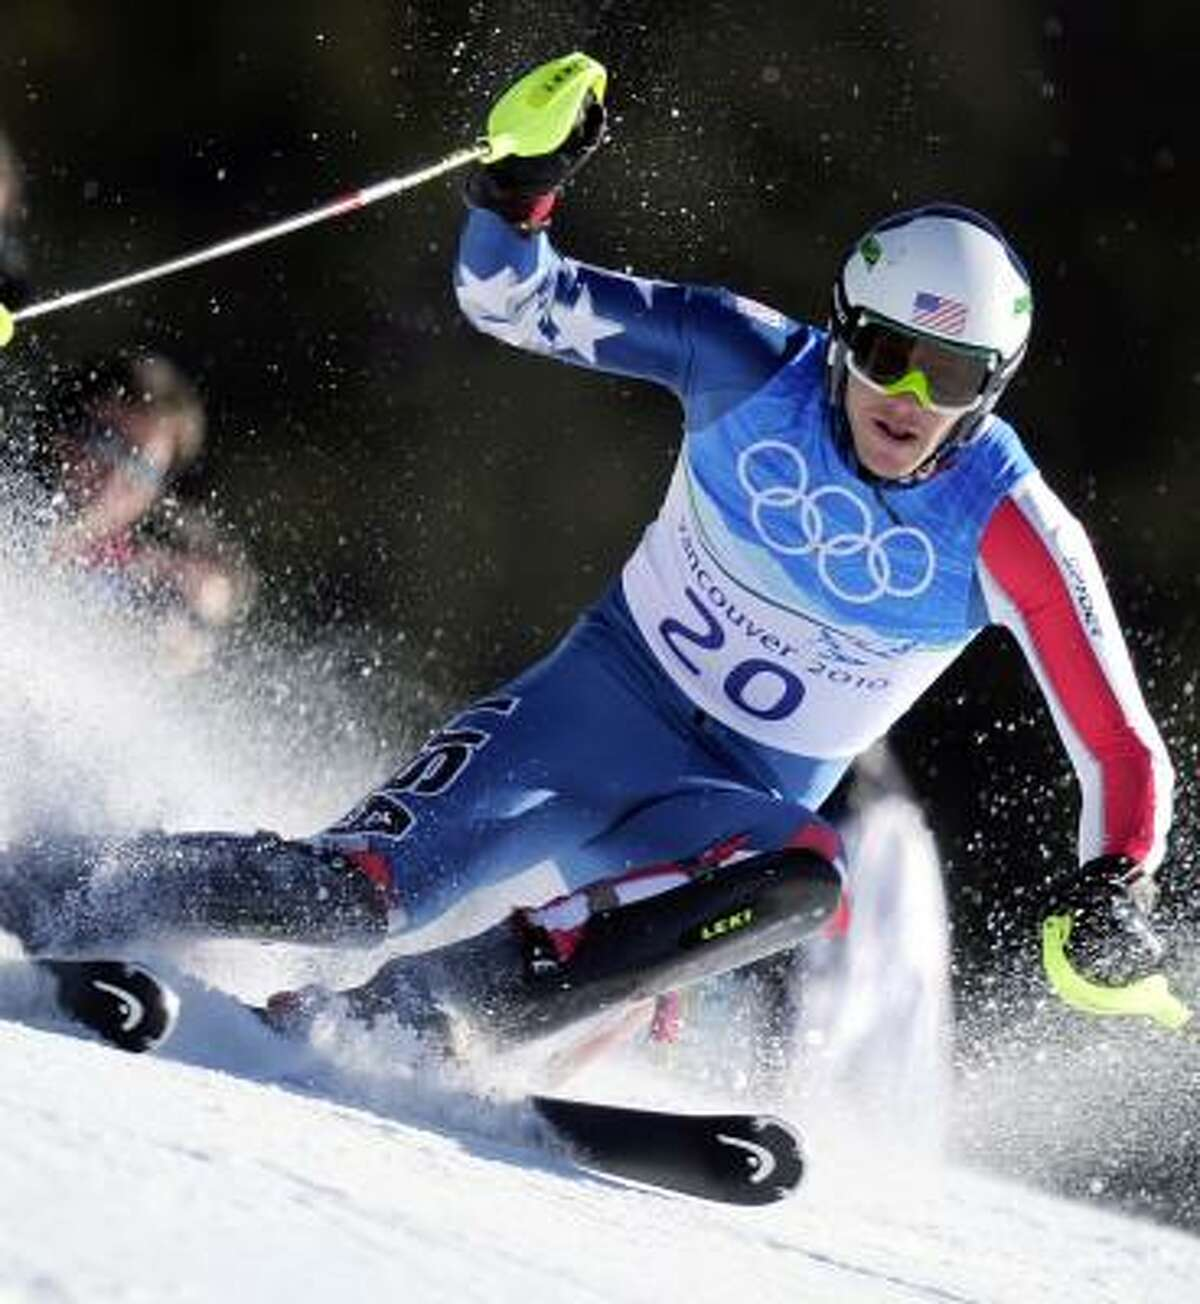 Bode Miller came back from seventh place with a strong performance in the slalom portion.